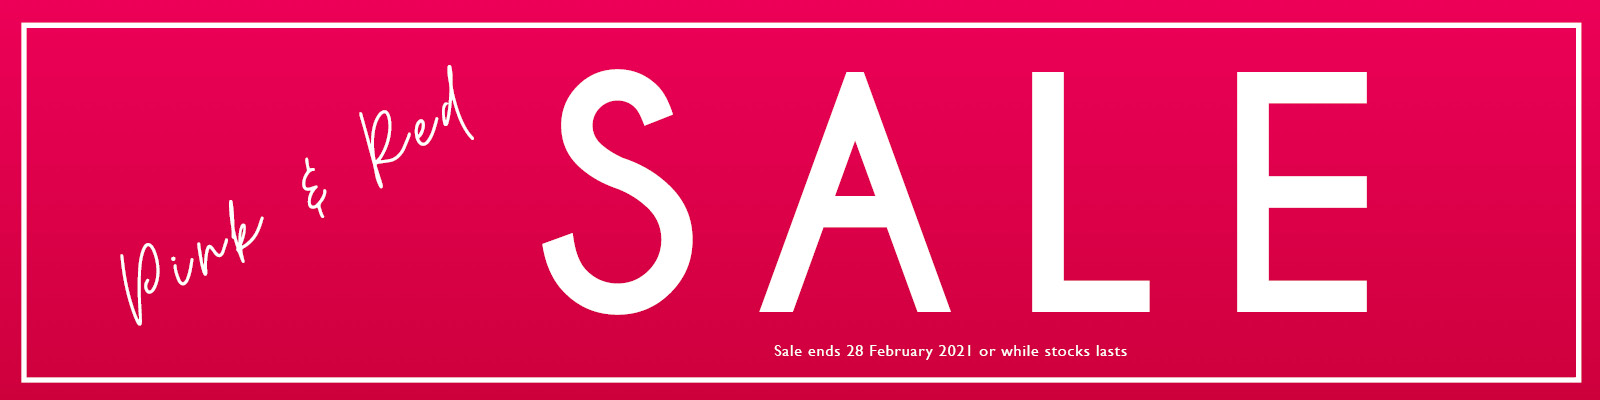 red-pink-sale-category-banner-size.jpg